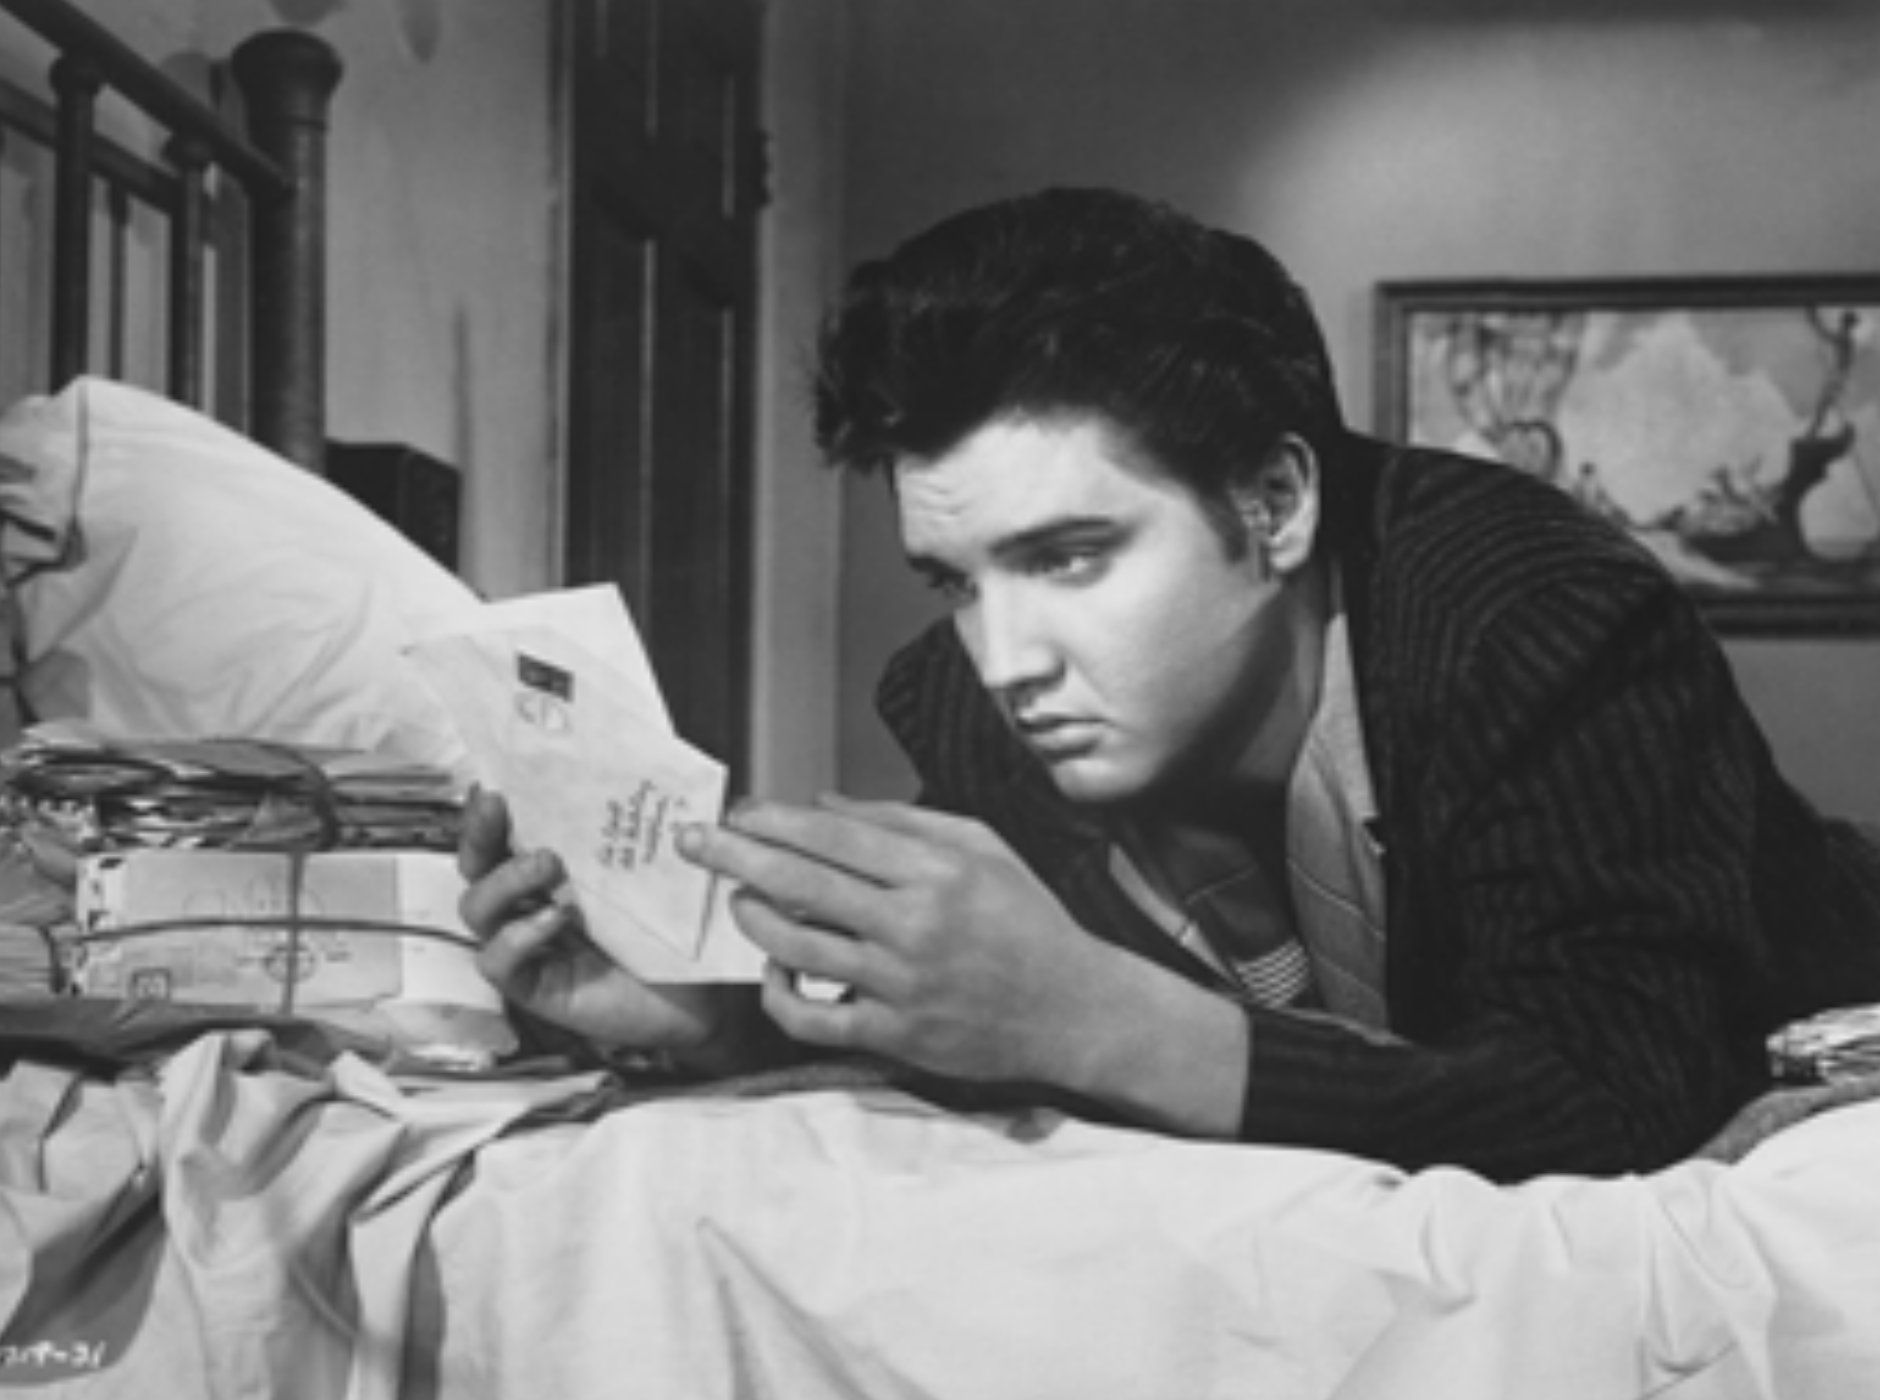 Elvis reading fan mail on his bed